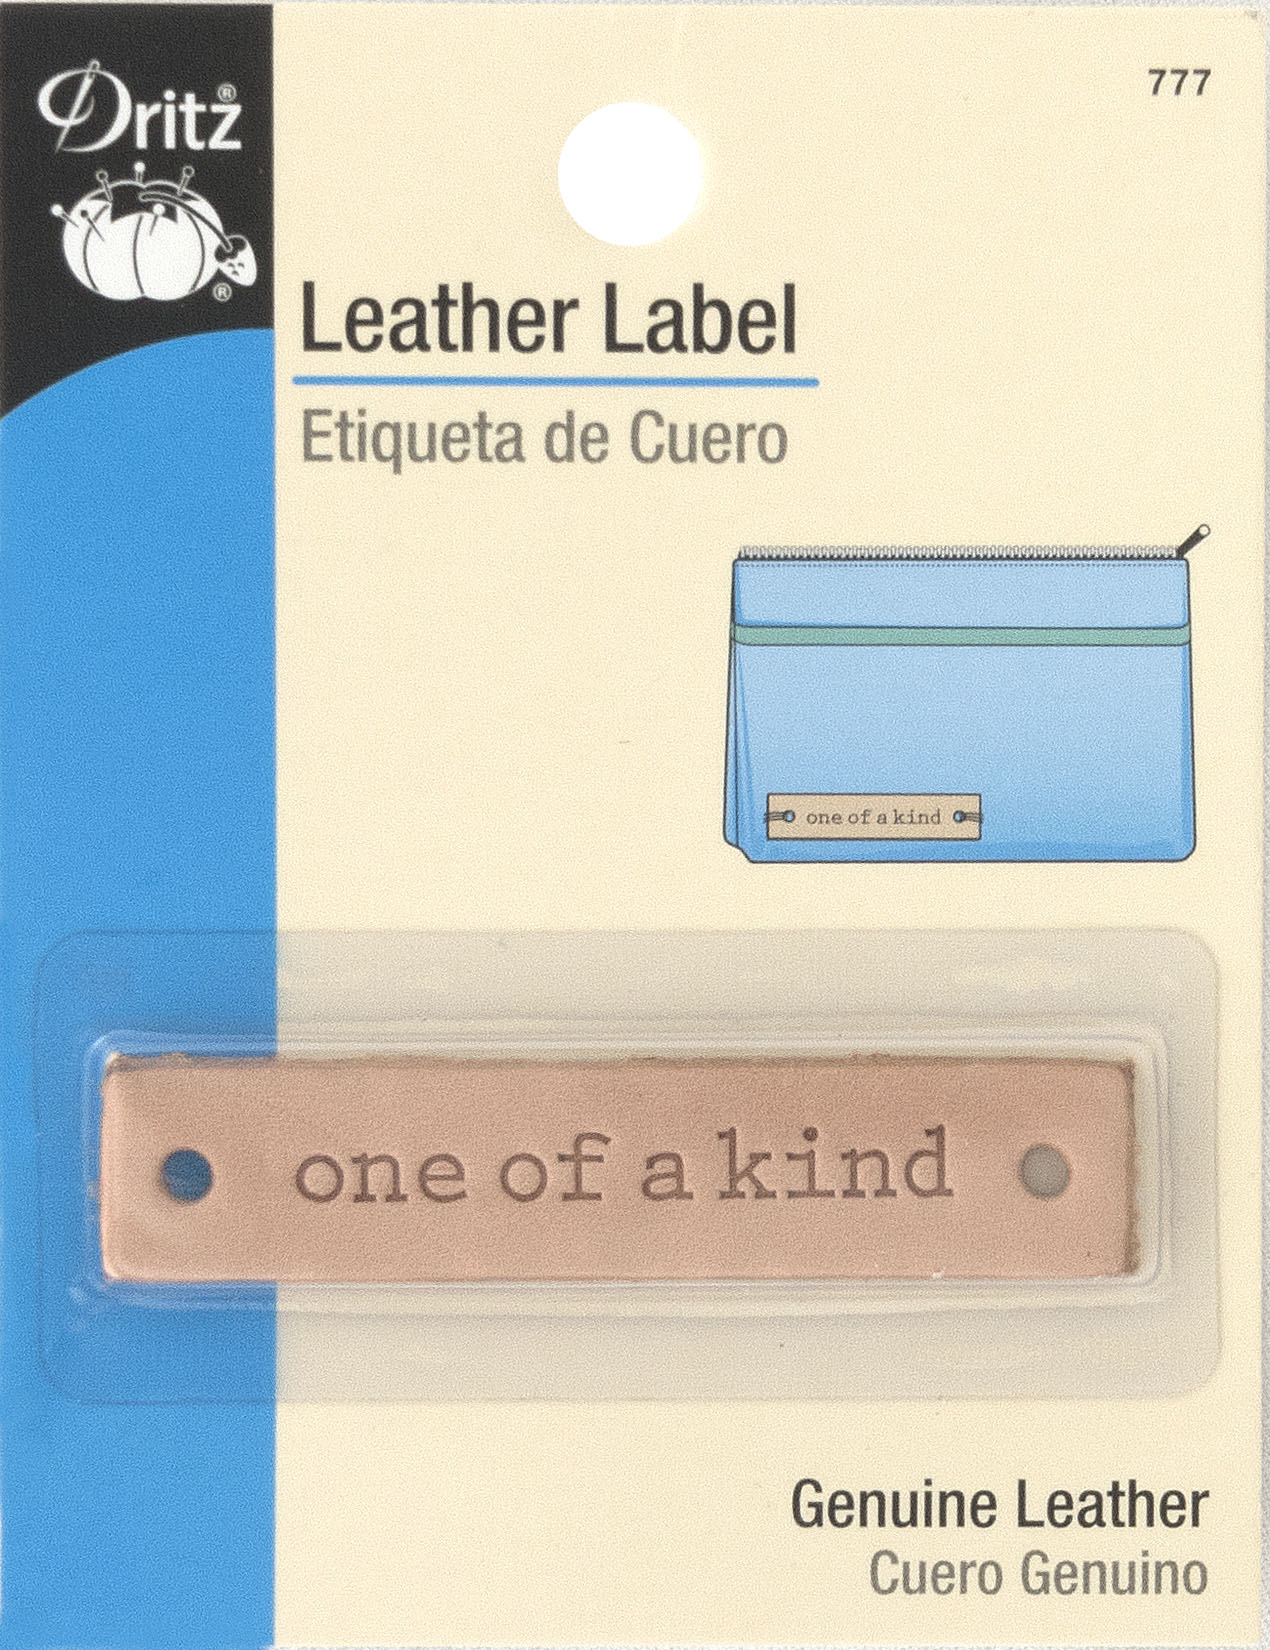 Dritz - Leather Label One of a Kind